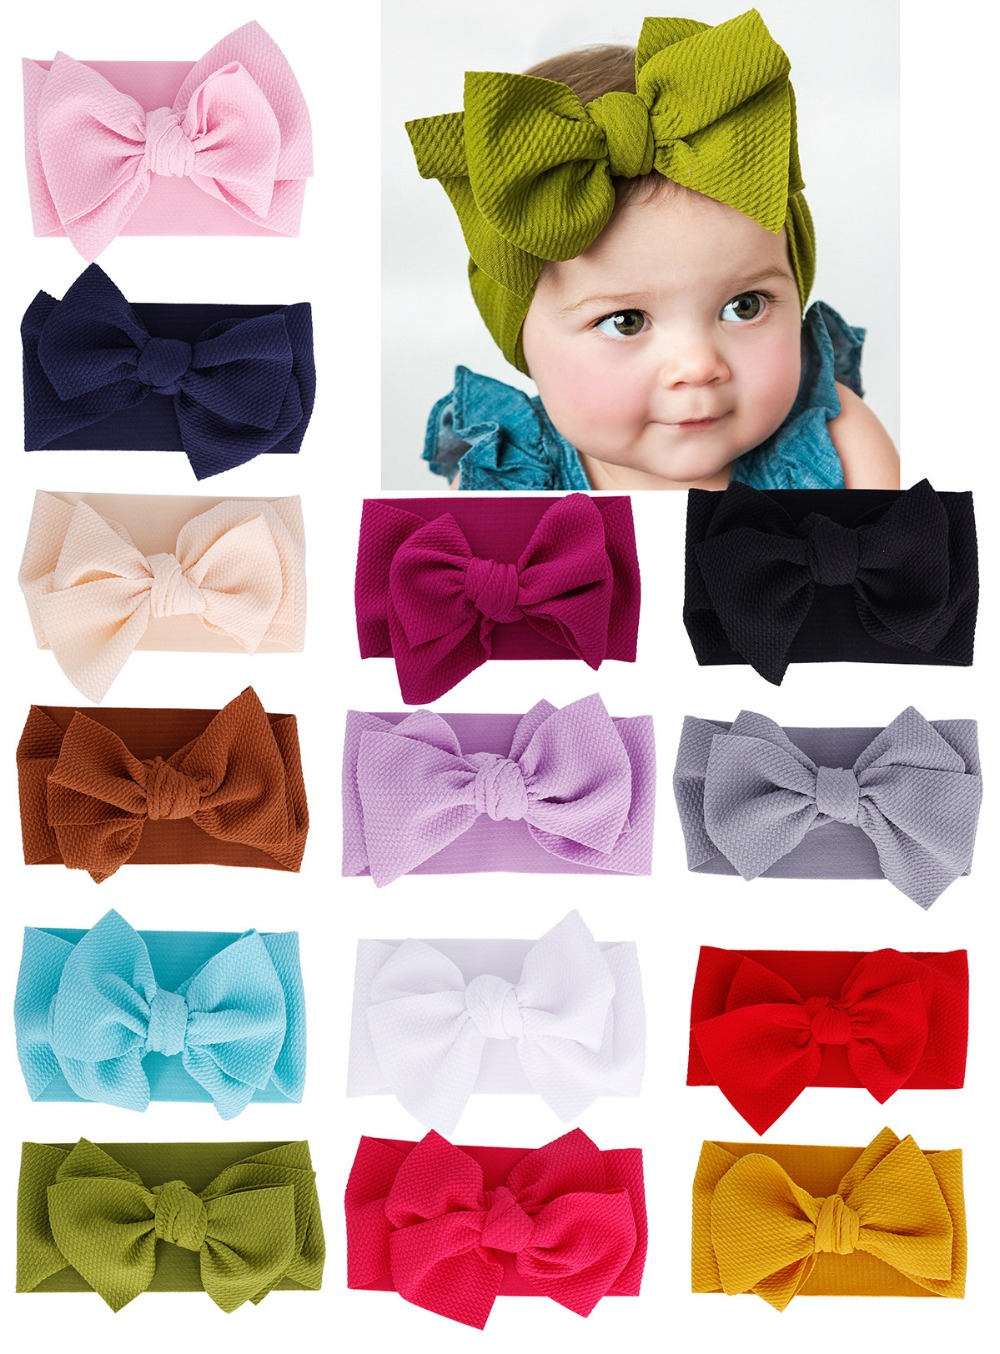 2019 Large 7inch Bow Girls Headband Oversized Bowknot Headwrap Kids Cotton Adjustable Turban Headband Girl s